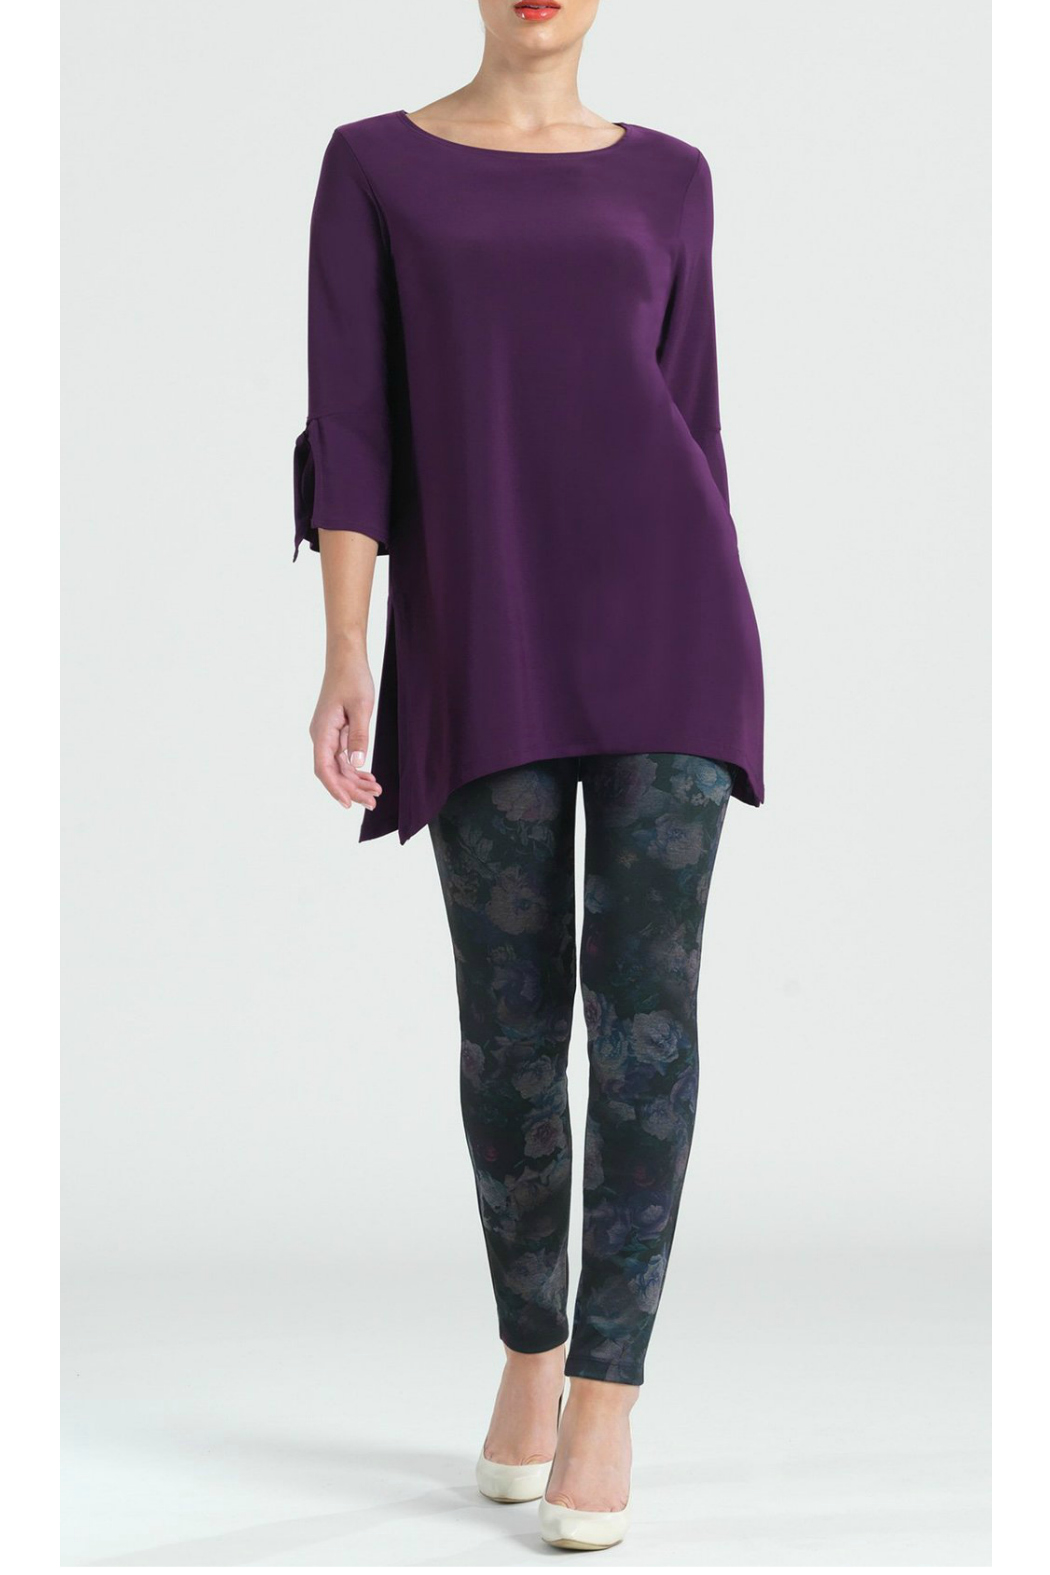 Clara Sunwoo Solid soft knit tunic - Main Image